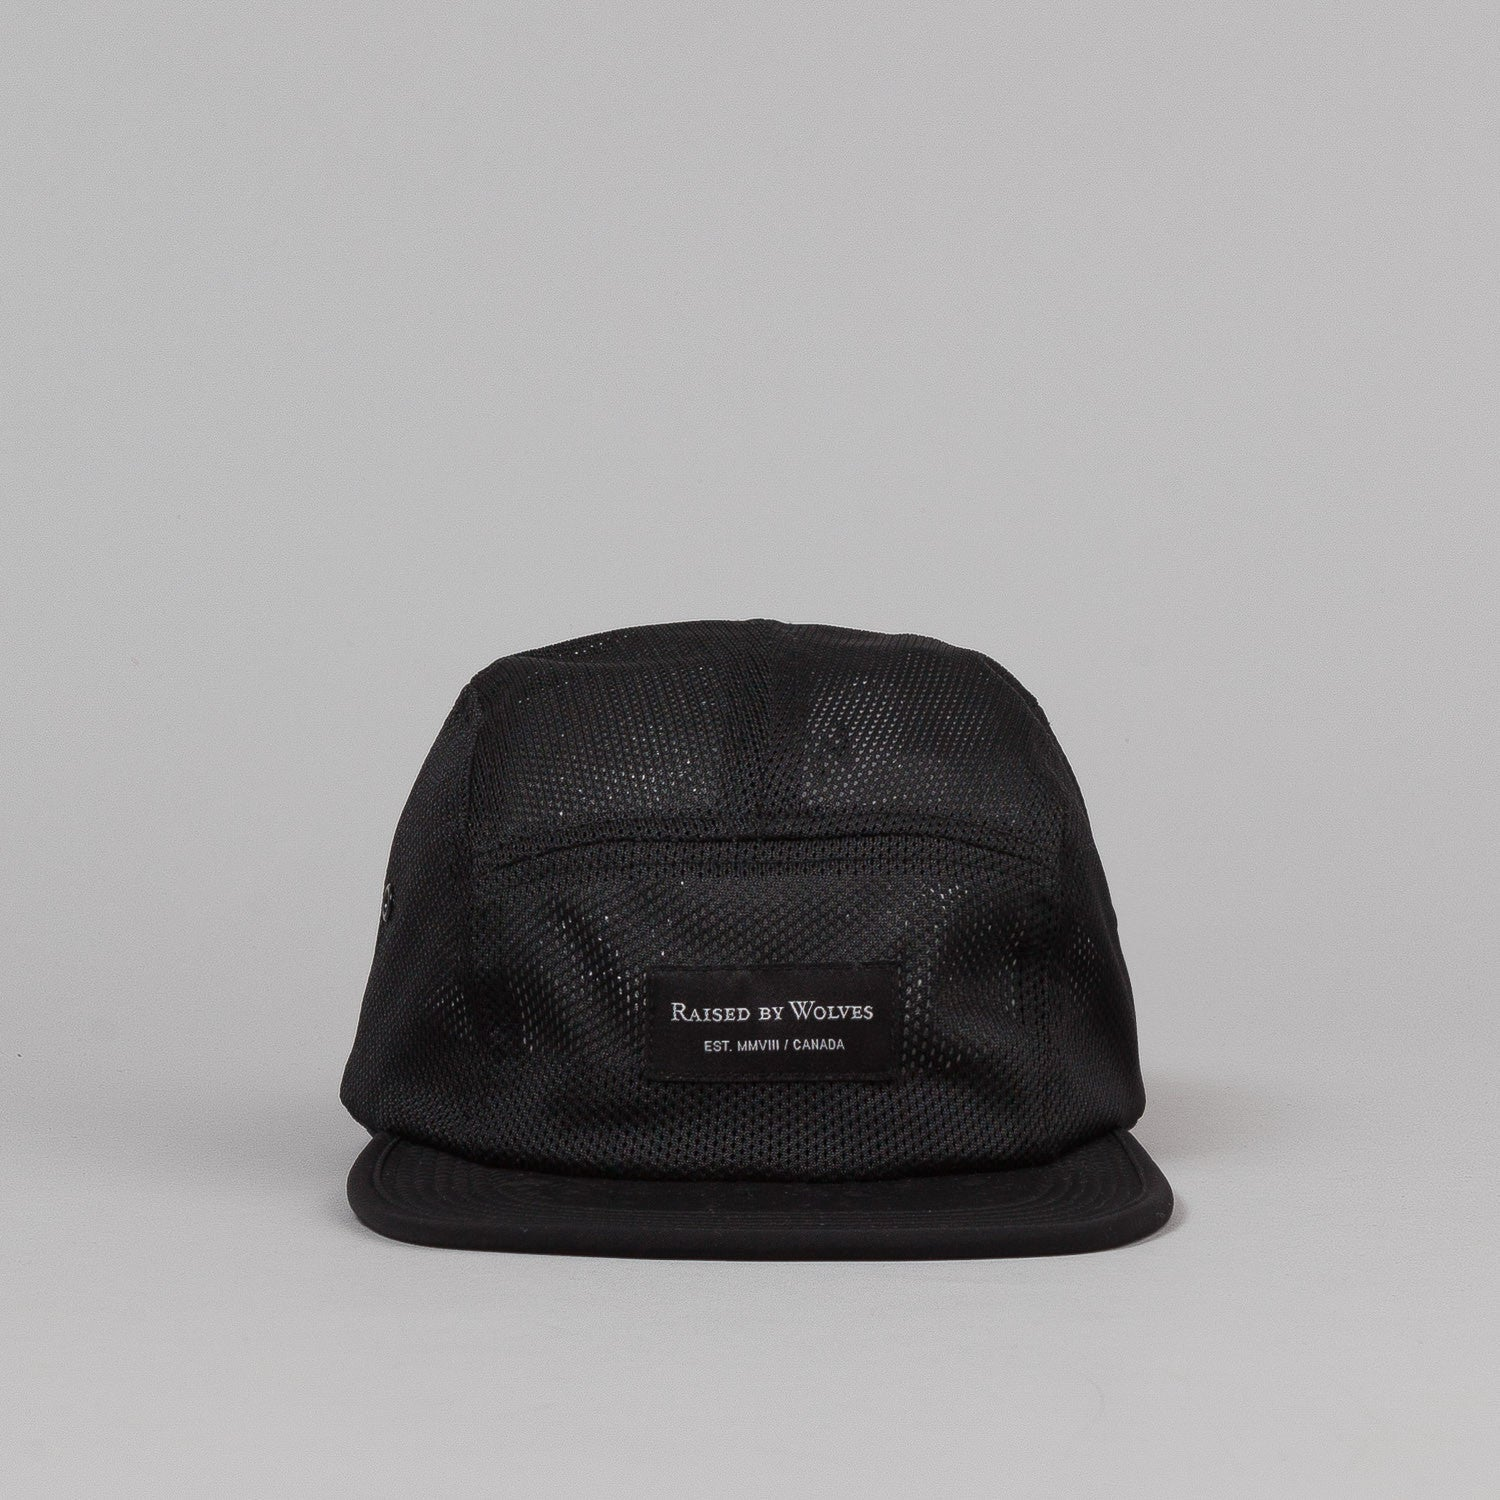 Raised By Wolves Algonquin Camp Cap - Koolknit Black